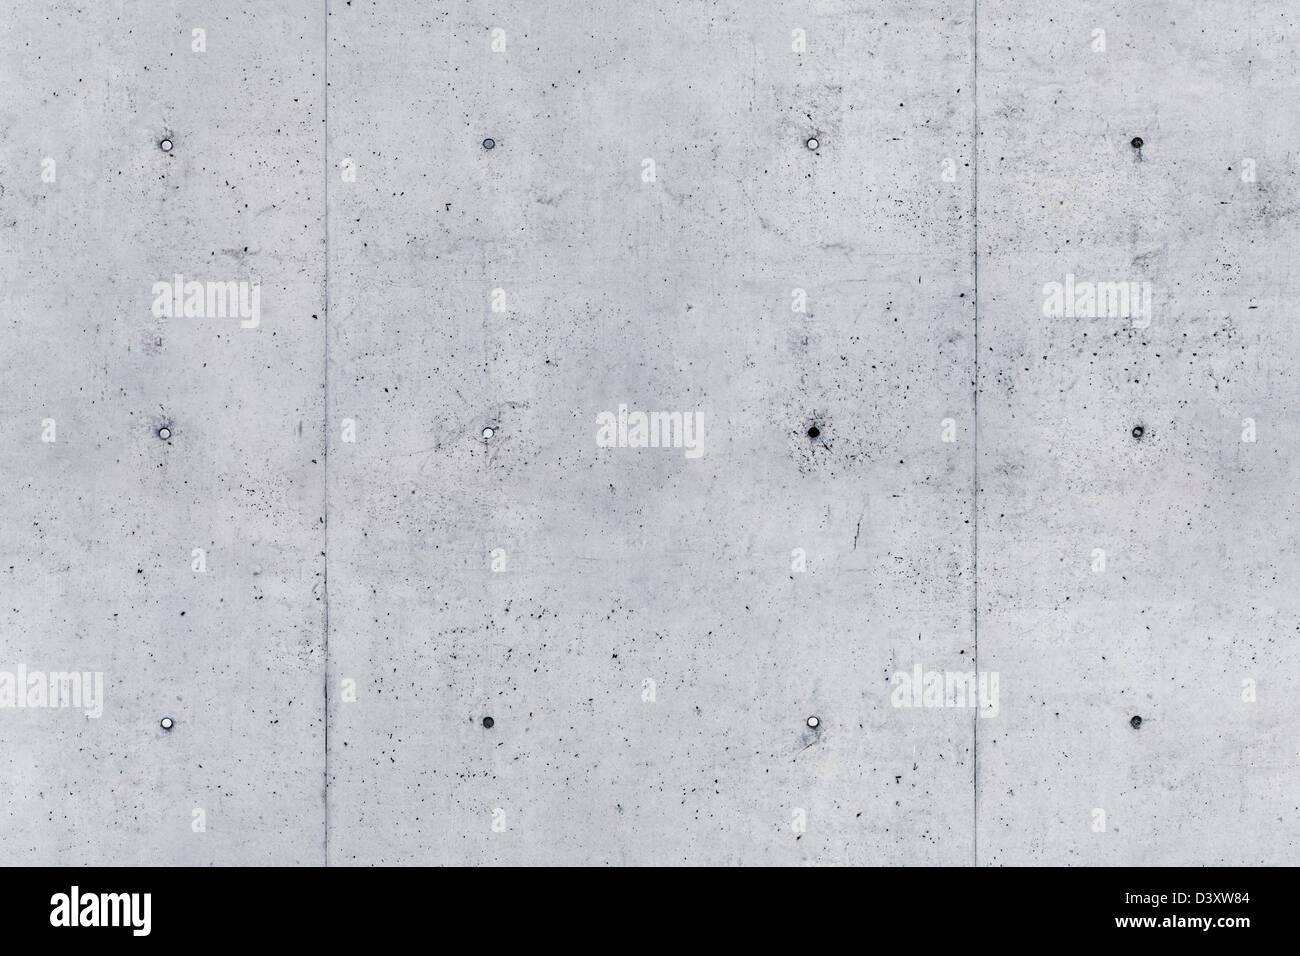 stock photo of concrete wall as seamless tiled texture background. scale: sample is about 4 feet high. - Stock Image